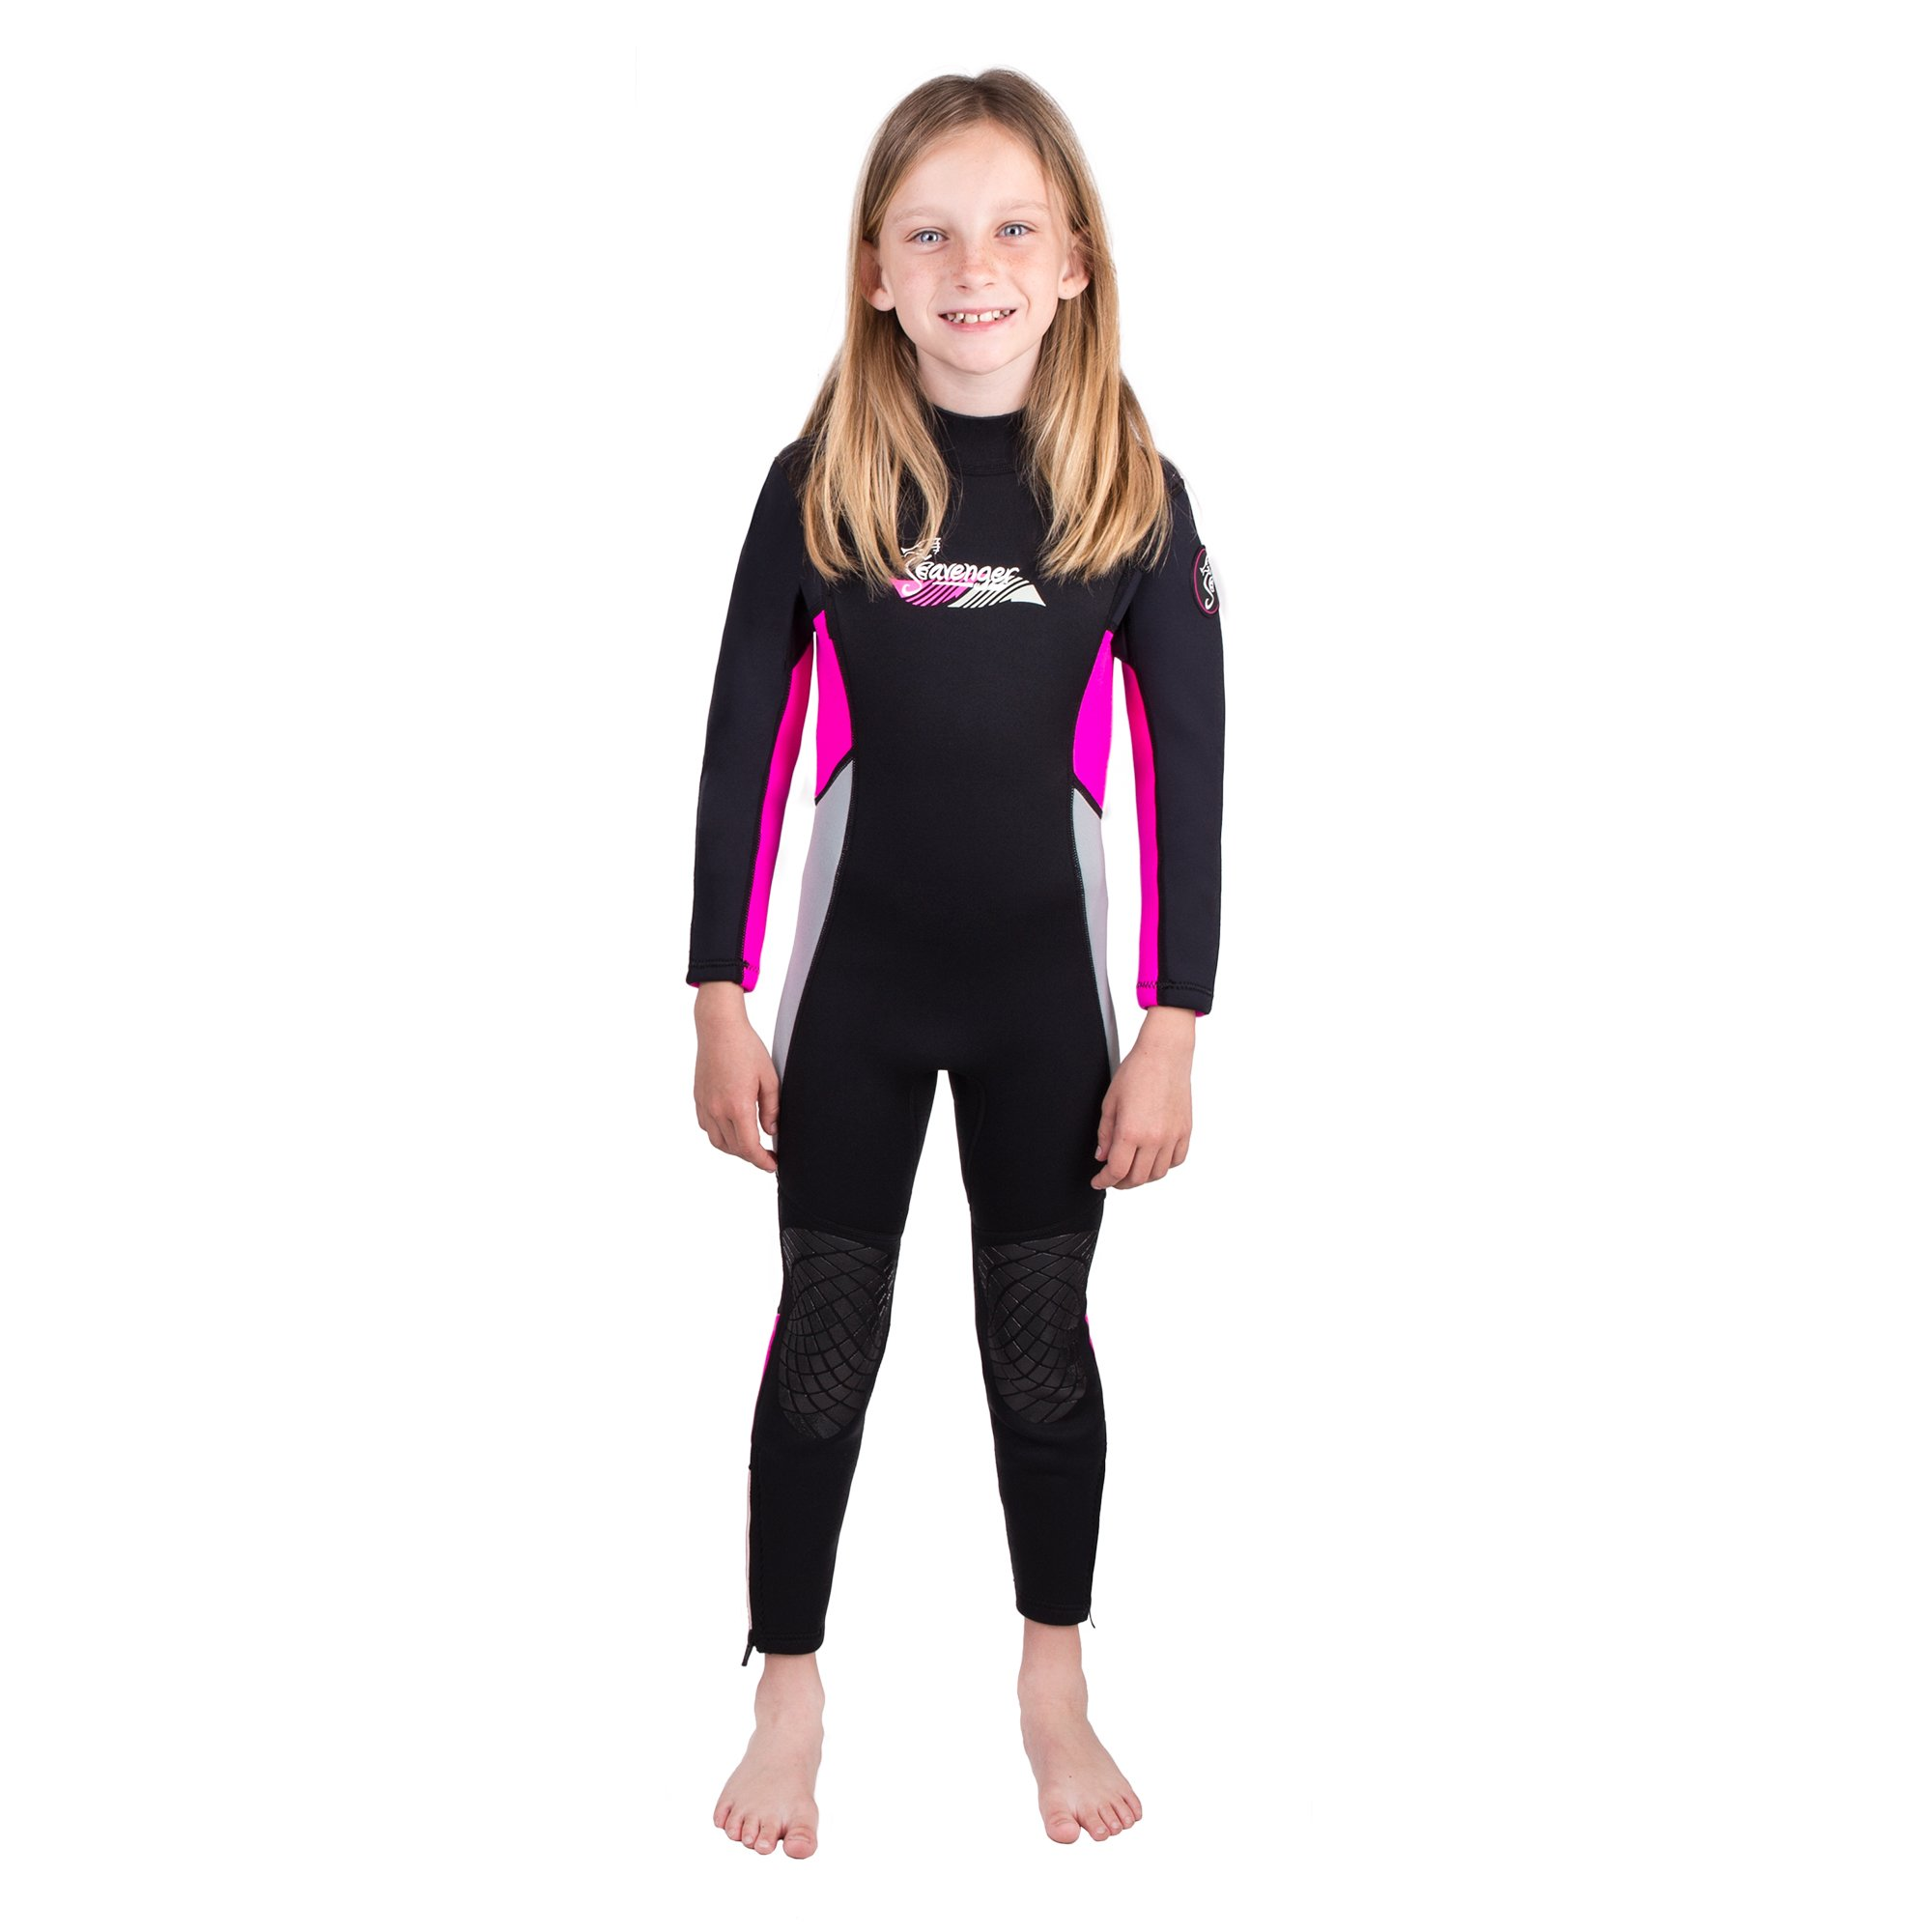 Seavenger Scout 3mm Kids Wetsuit | Full Body Neoprene Suit for Snorkeling, Swimming, Diving (Coral Pink, 8) by Seavenger